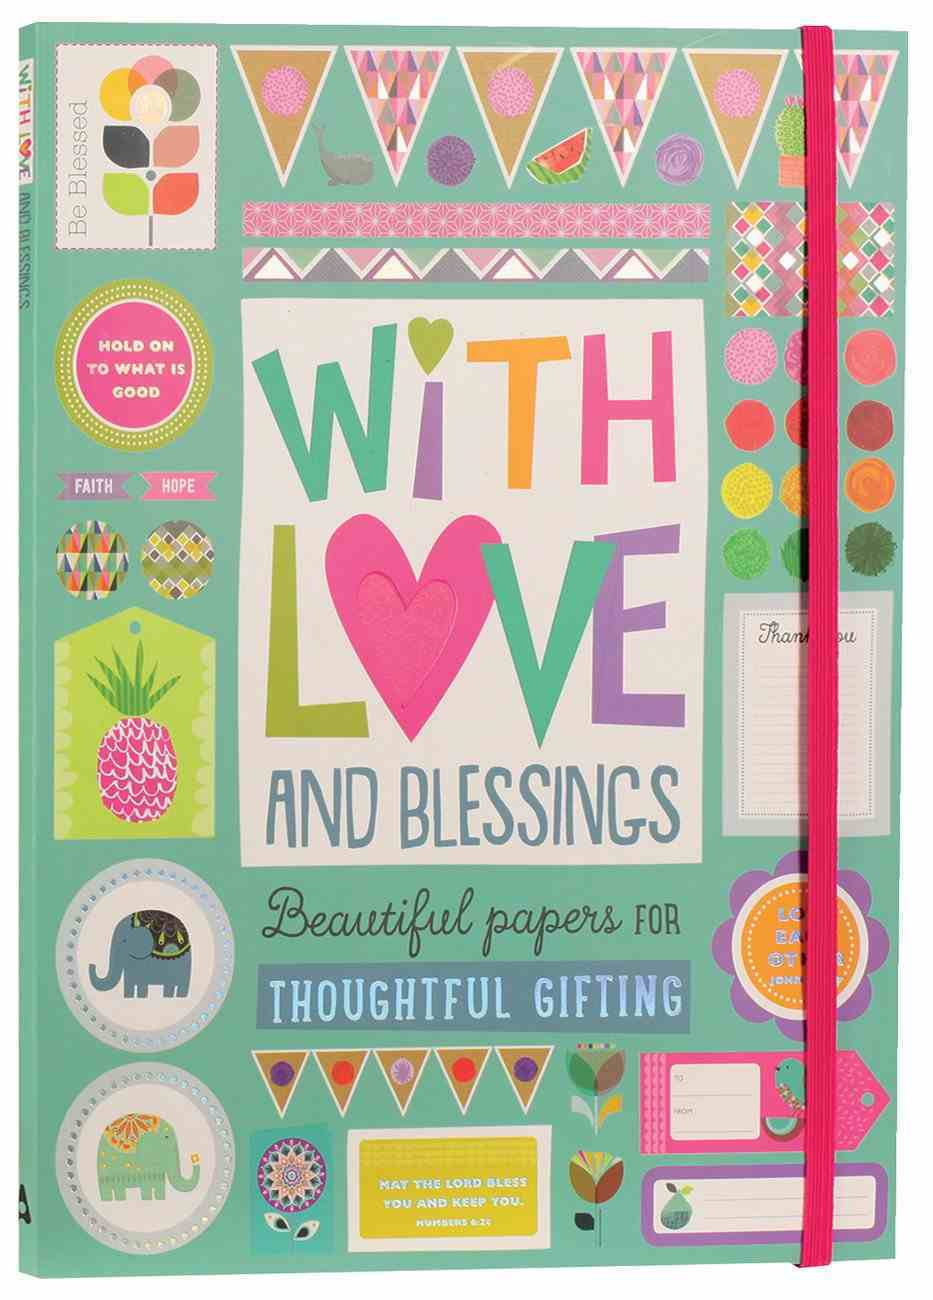 With Love and Blessings: Includes Press-Out Gift Tags, Stickers, Cards and Decorative Paper Paperback